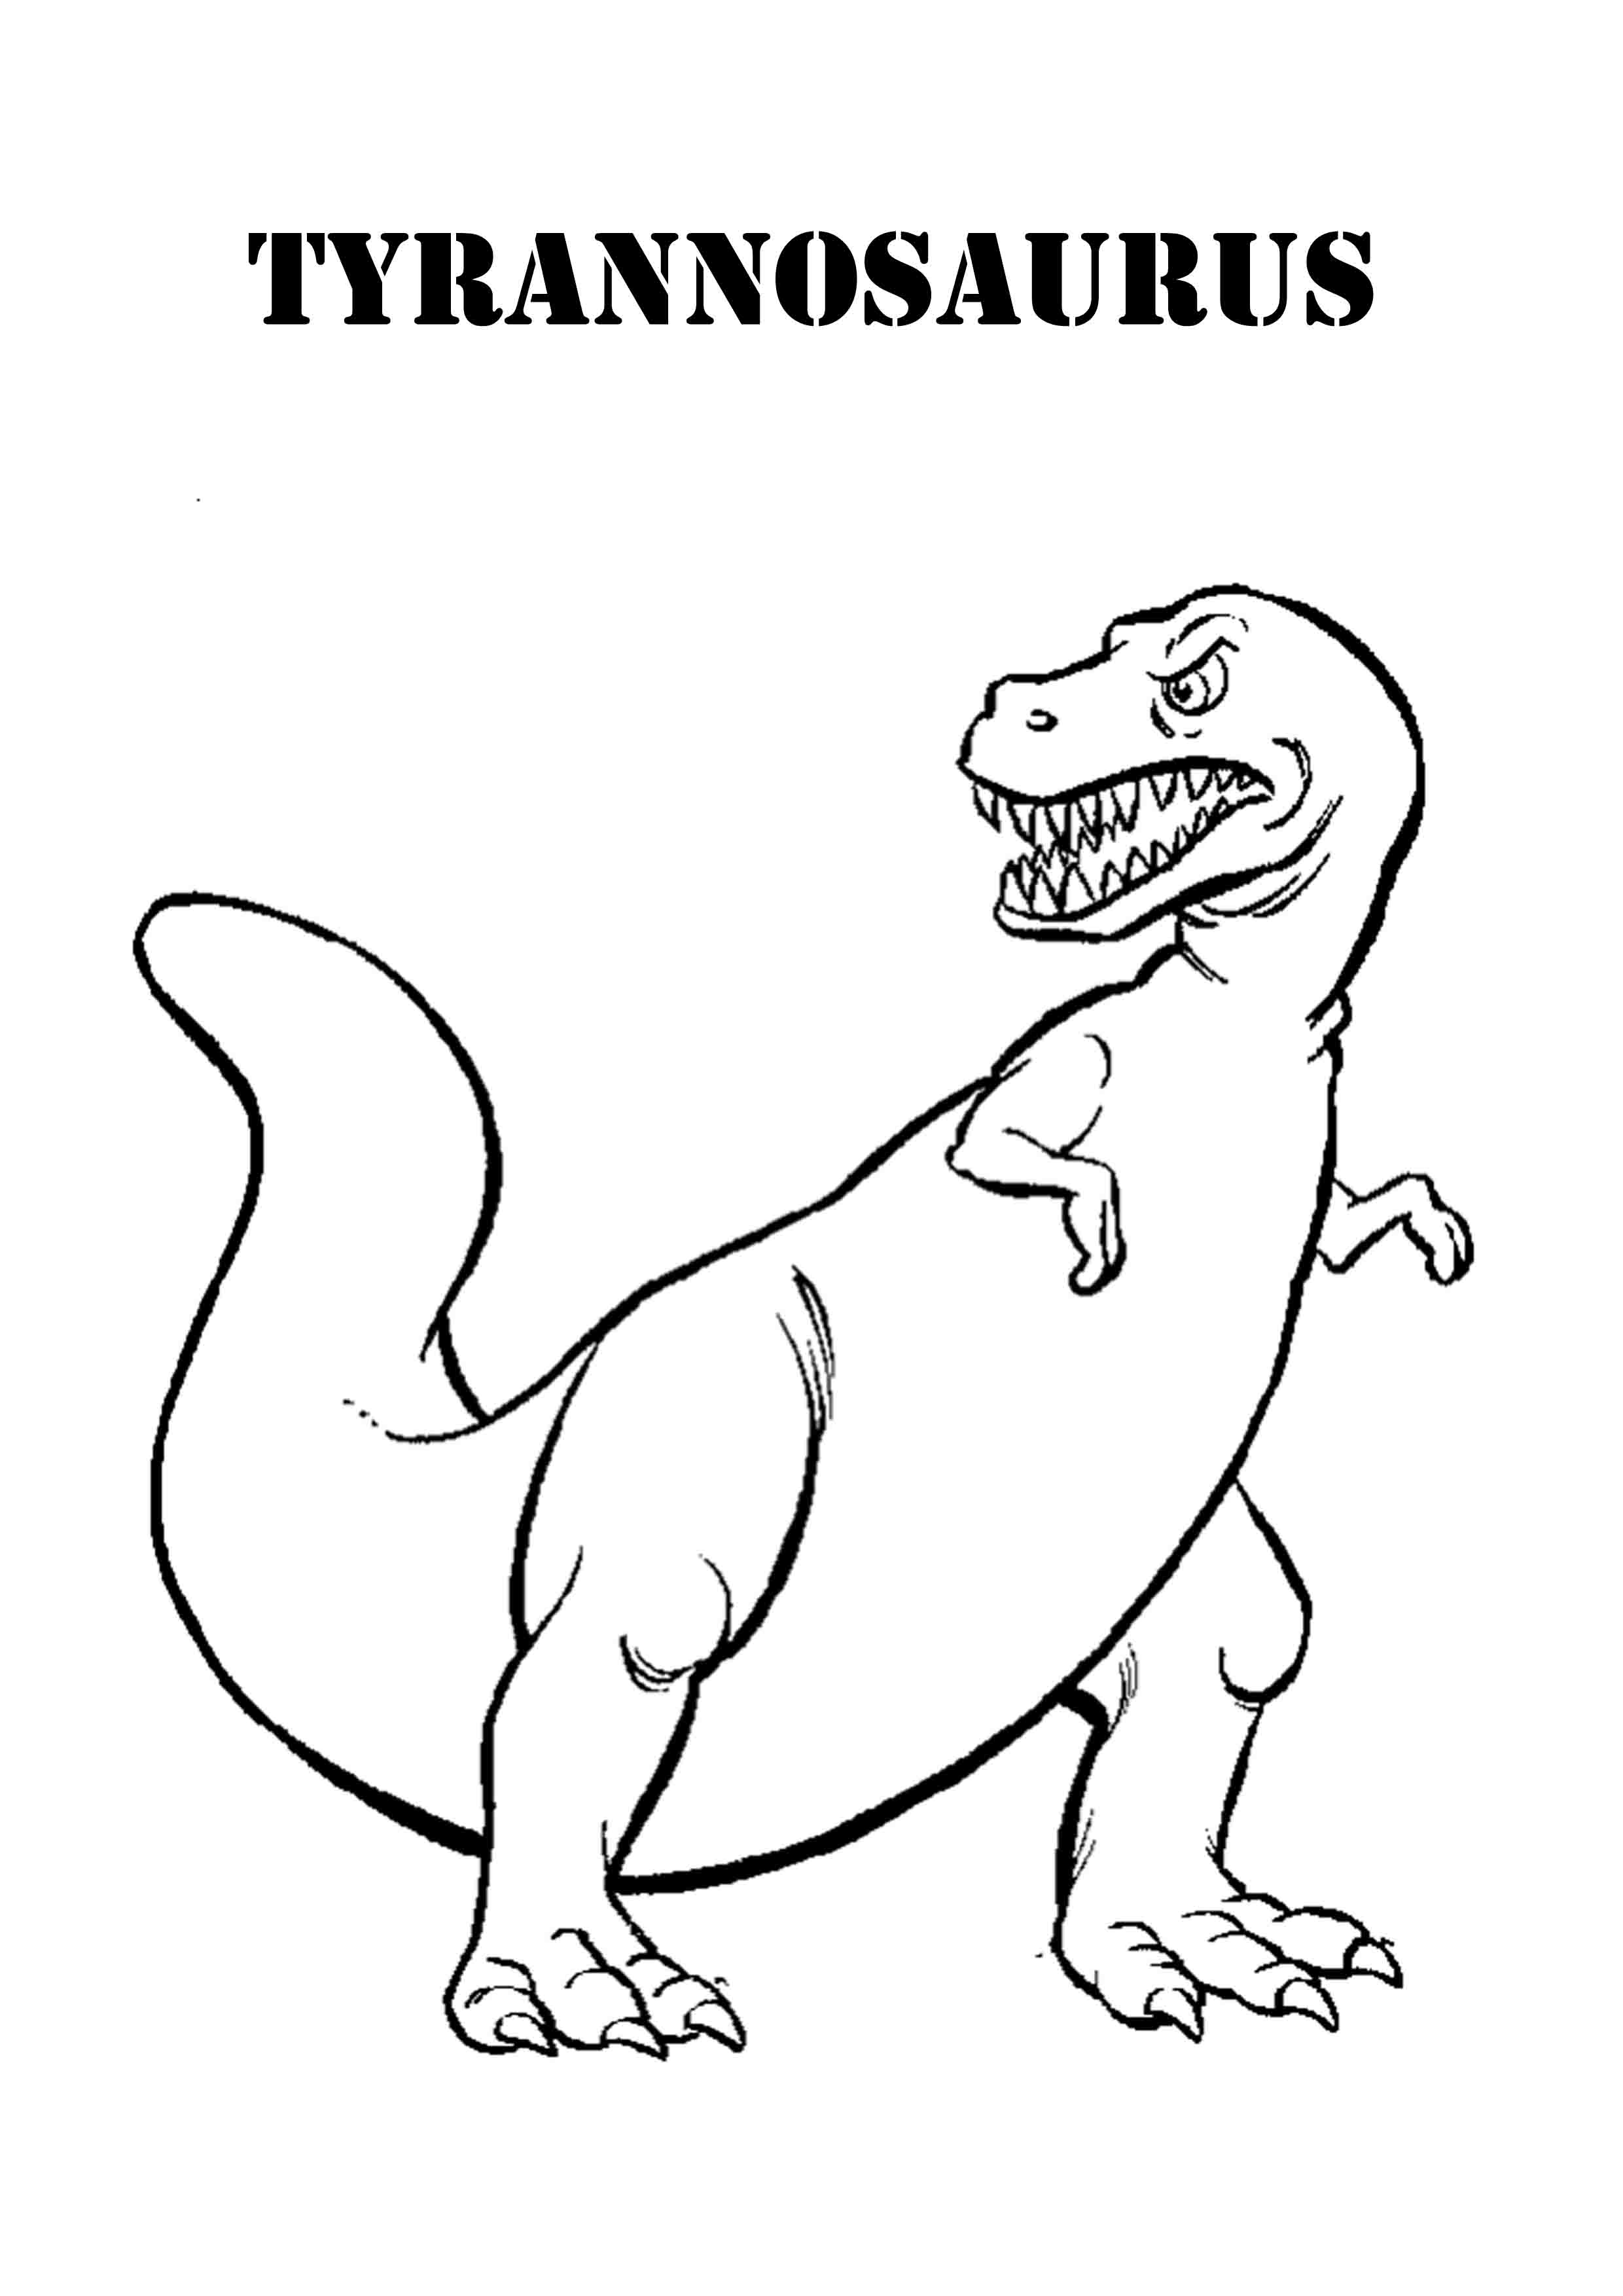 scary dinosaur coloring pages. Black Bedroom Furniture Sets. Home Design Ideas